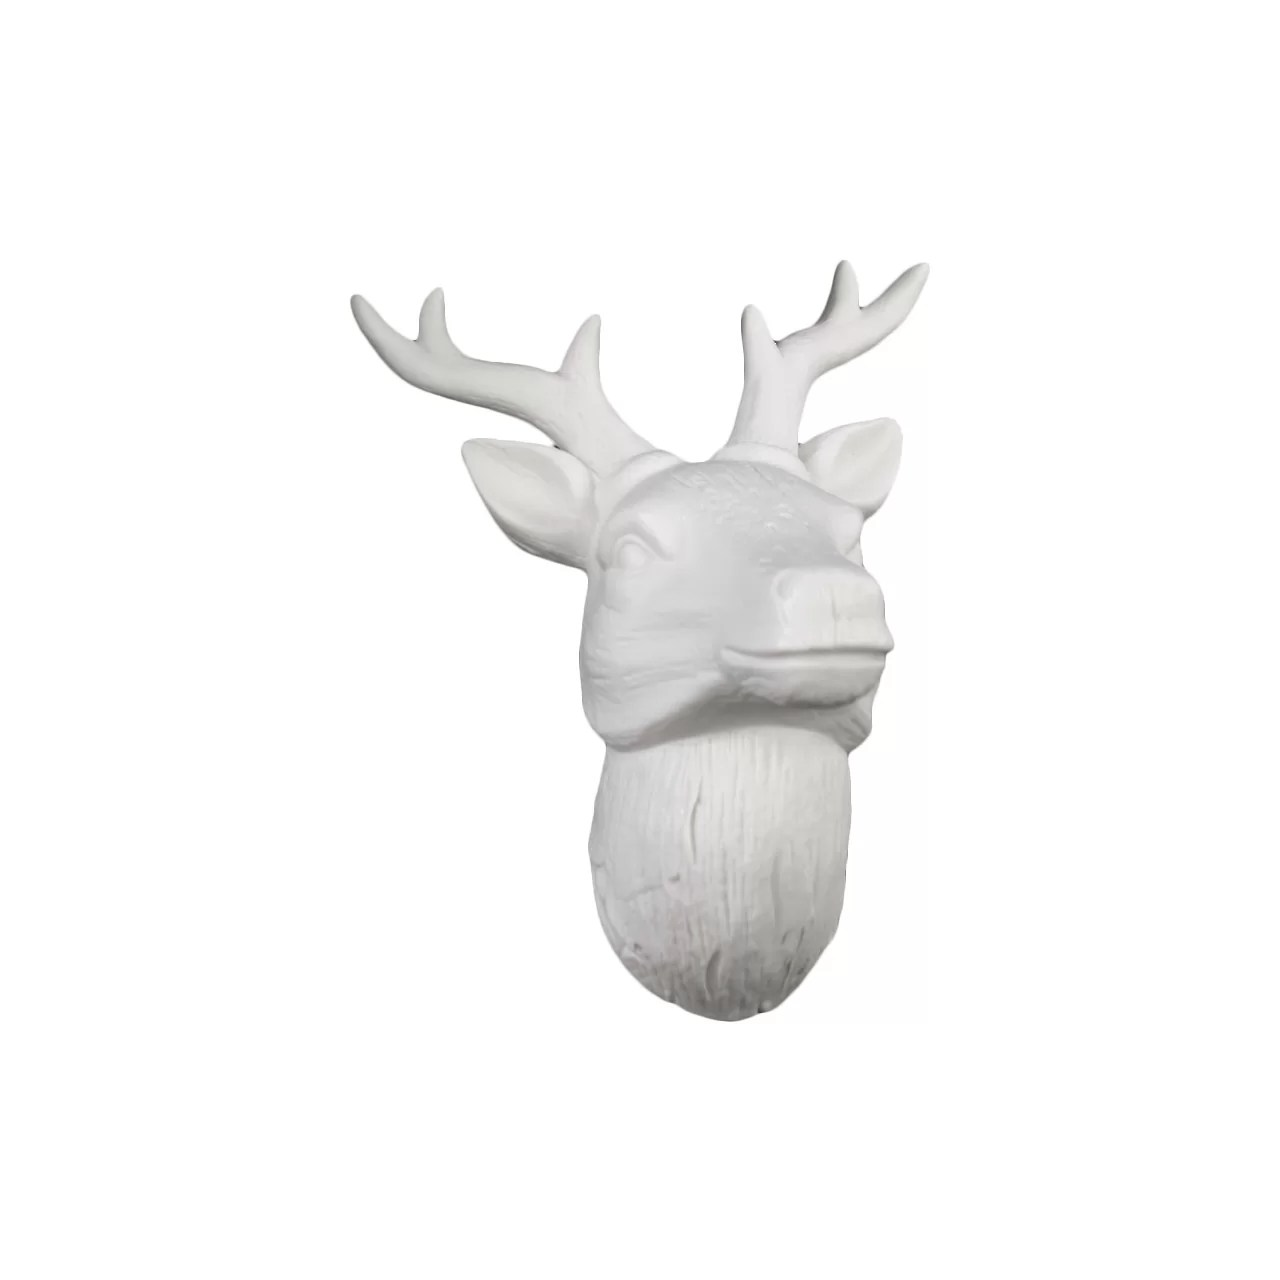 White Porcelain Deer Head Urban Trends Porcelain Deer Head Wall Decor Gloss White